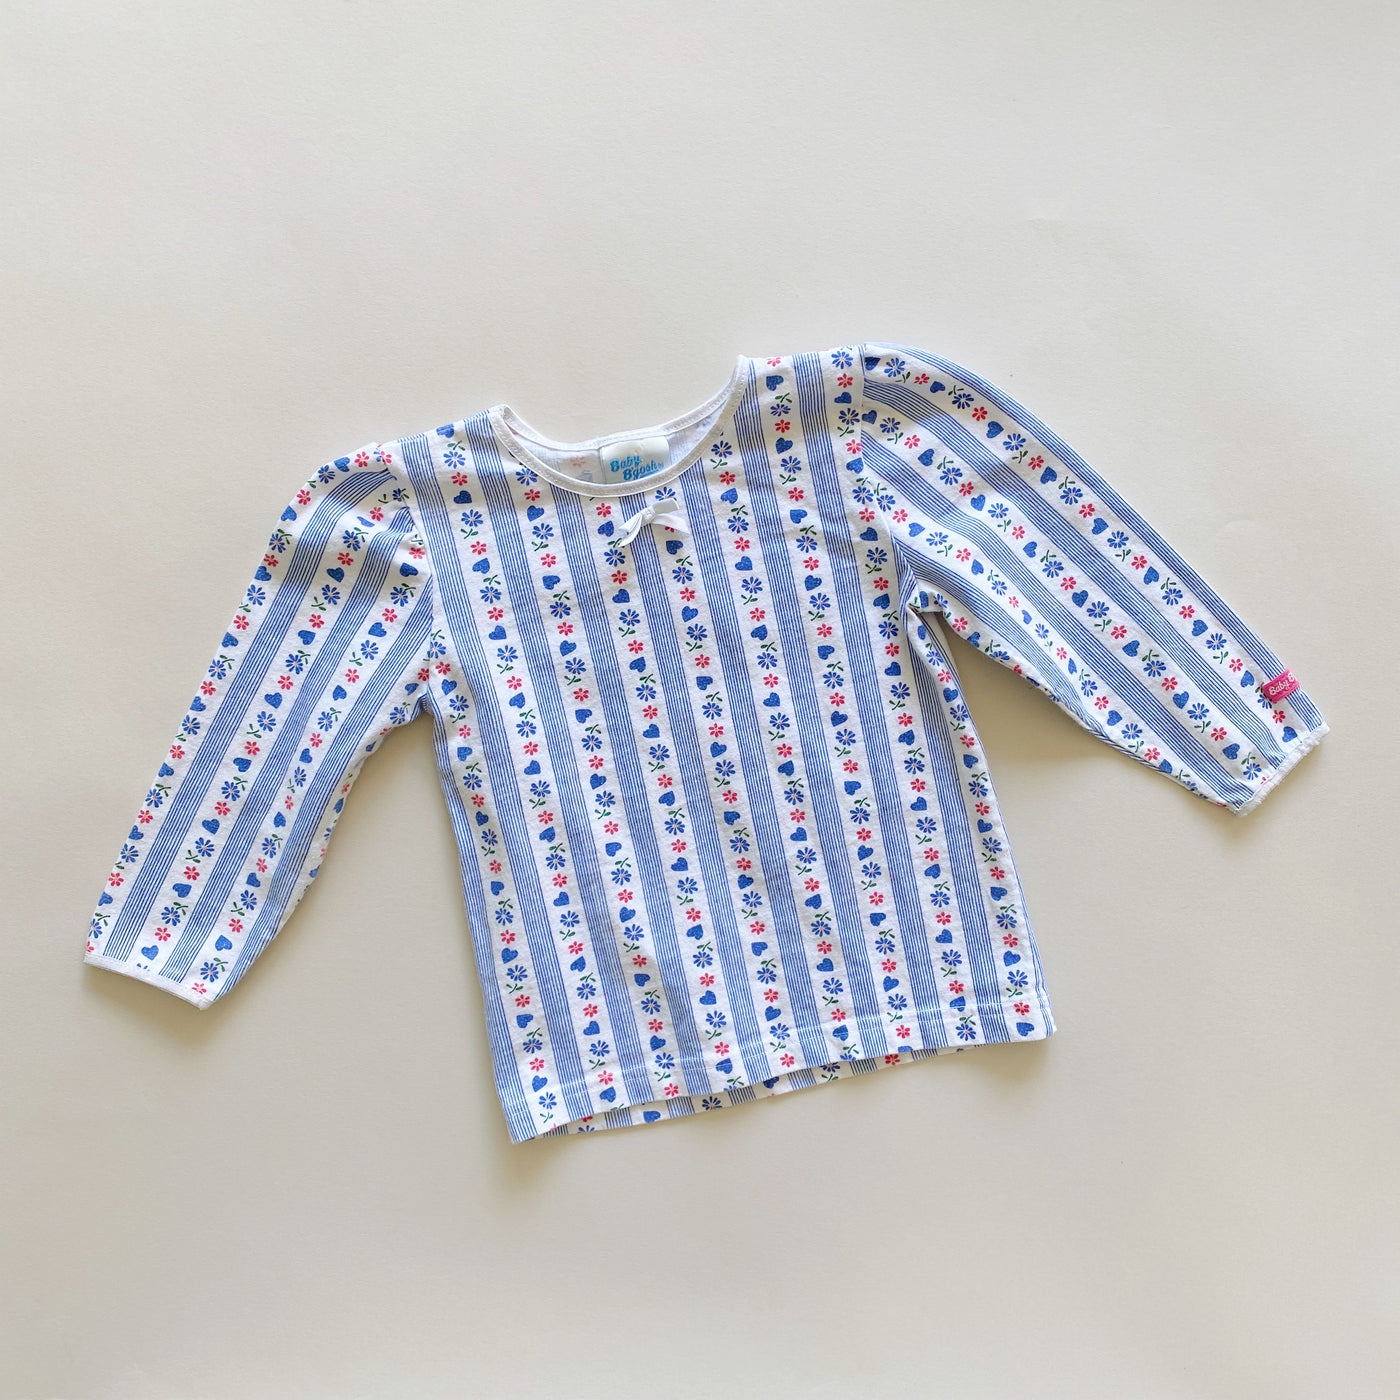 Vintage Baby B'gosh Patterned Top / Size 24M